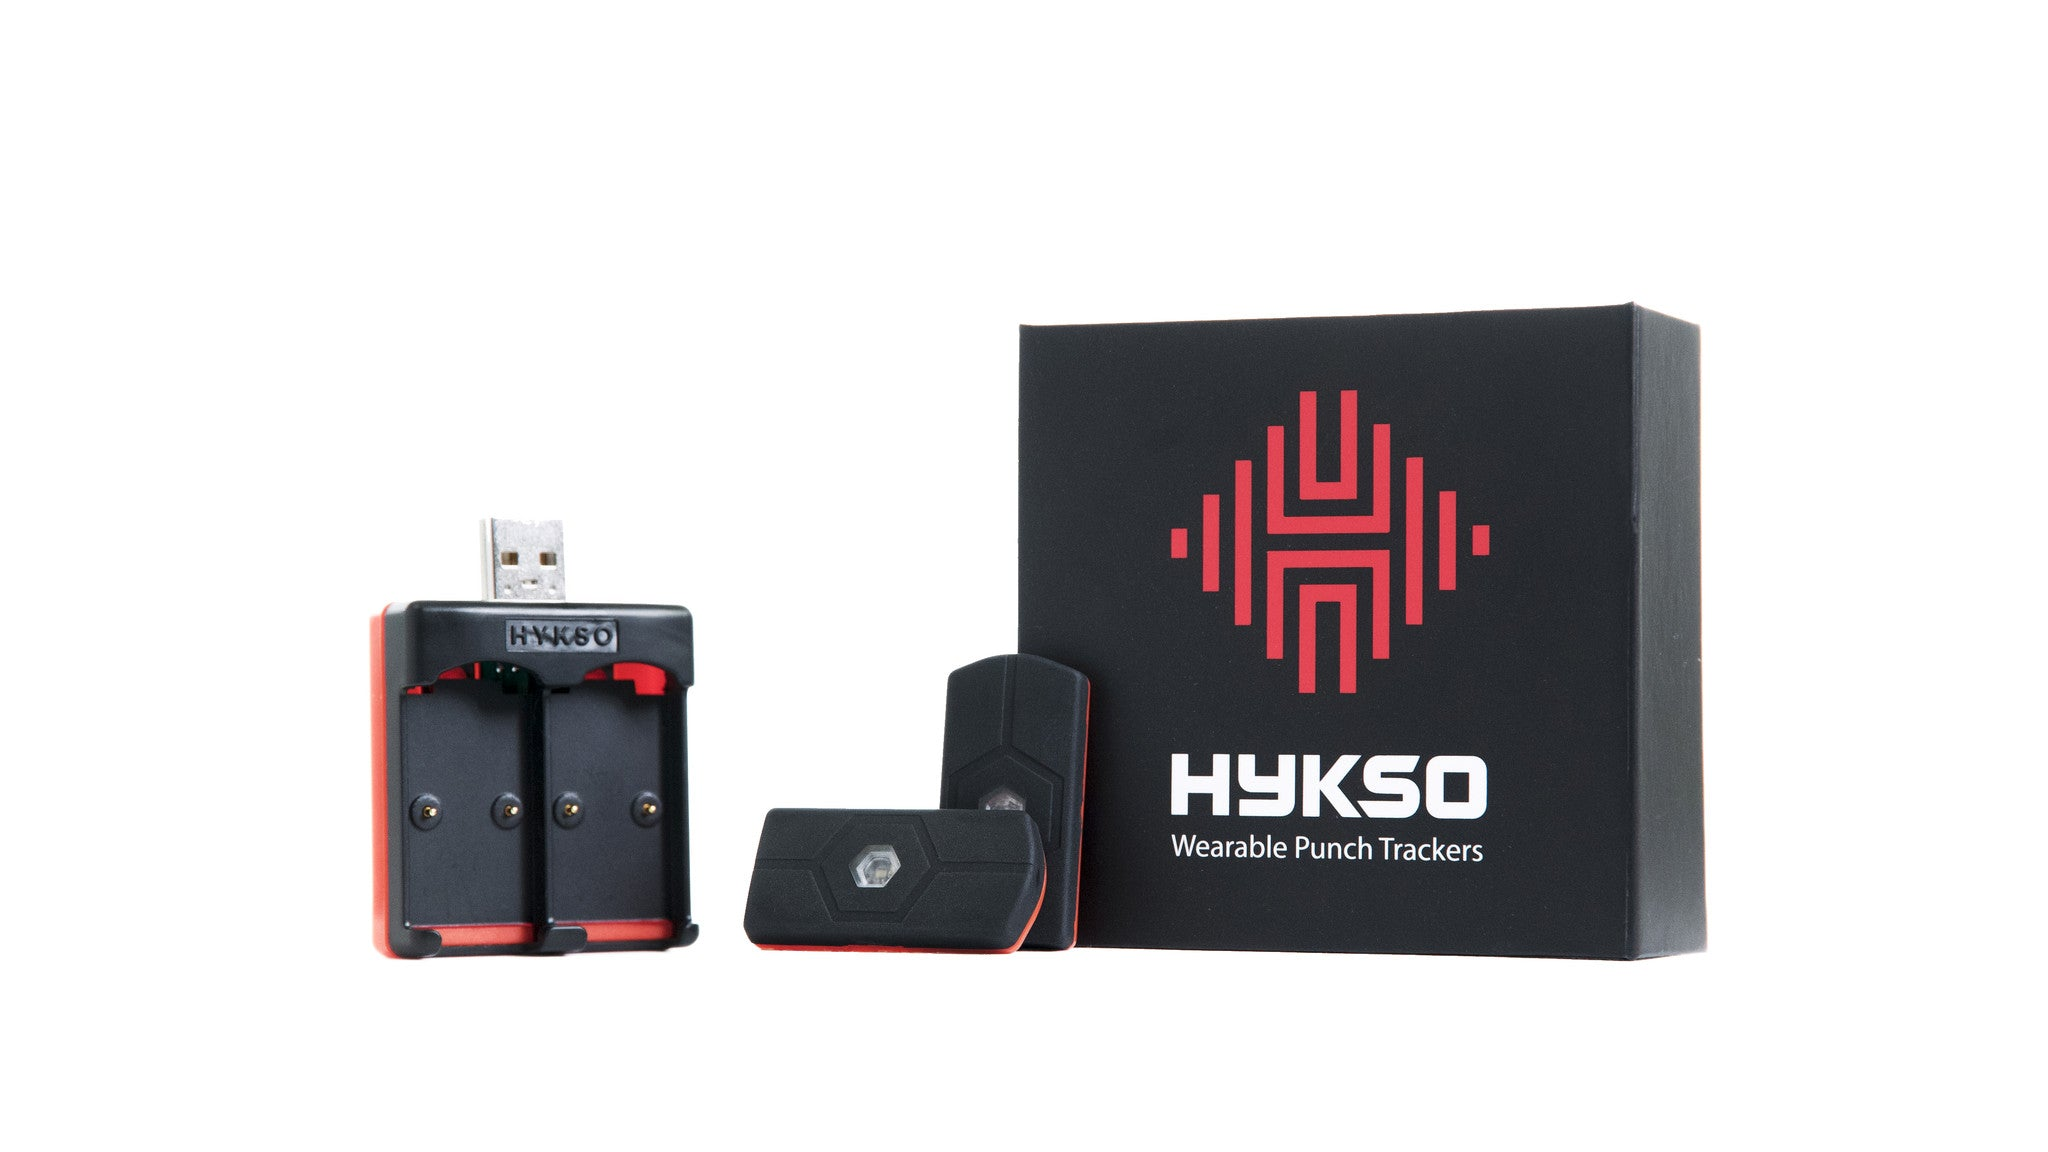 20 Pairs of Hykso Punch Trackers at $122 each for Mick Greany!